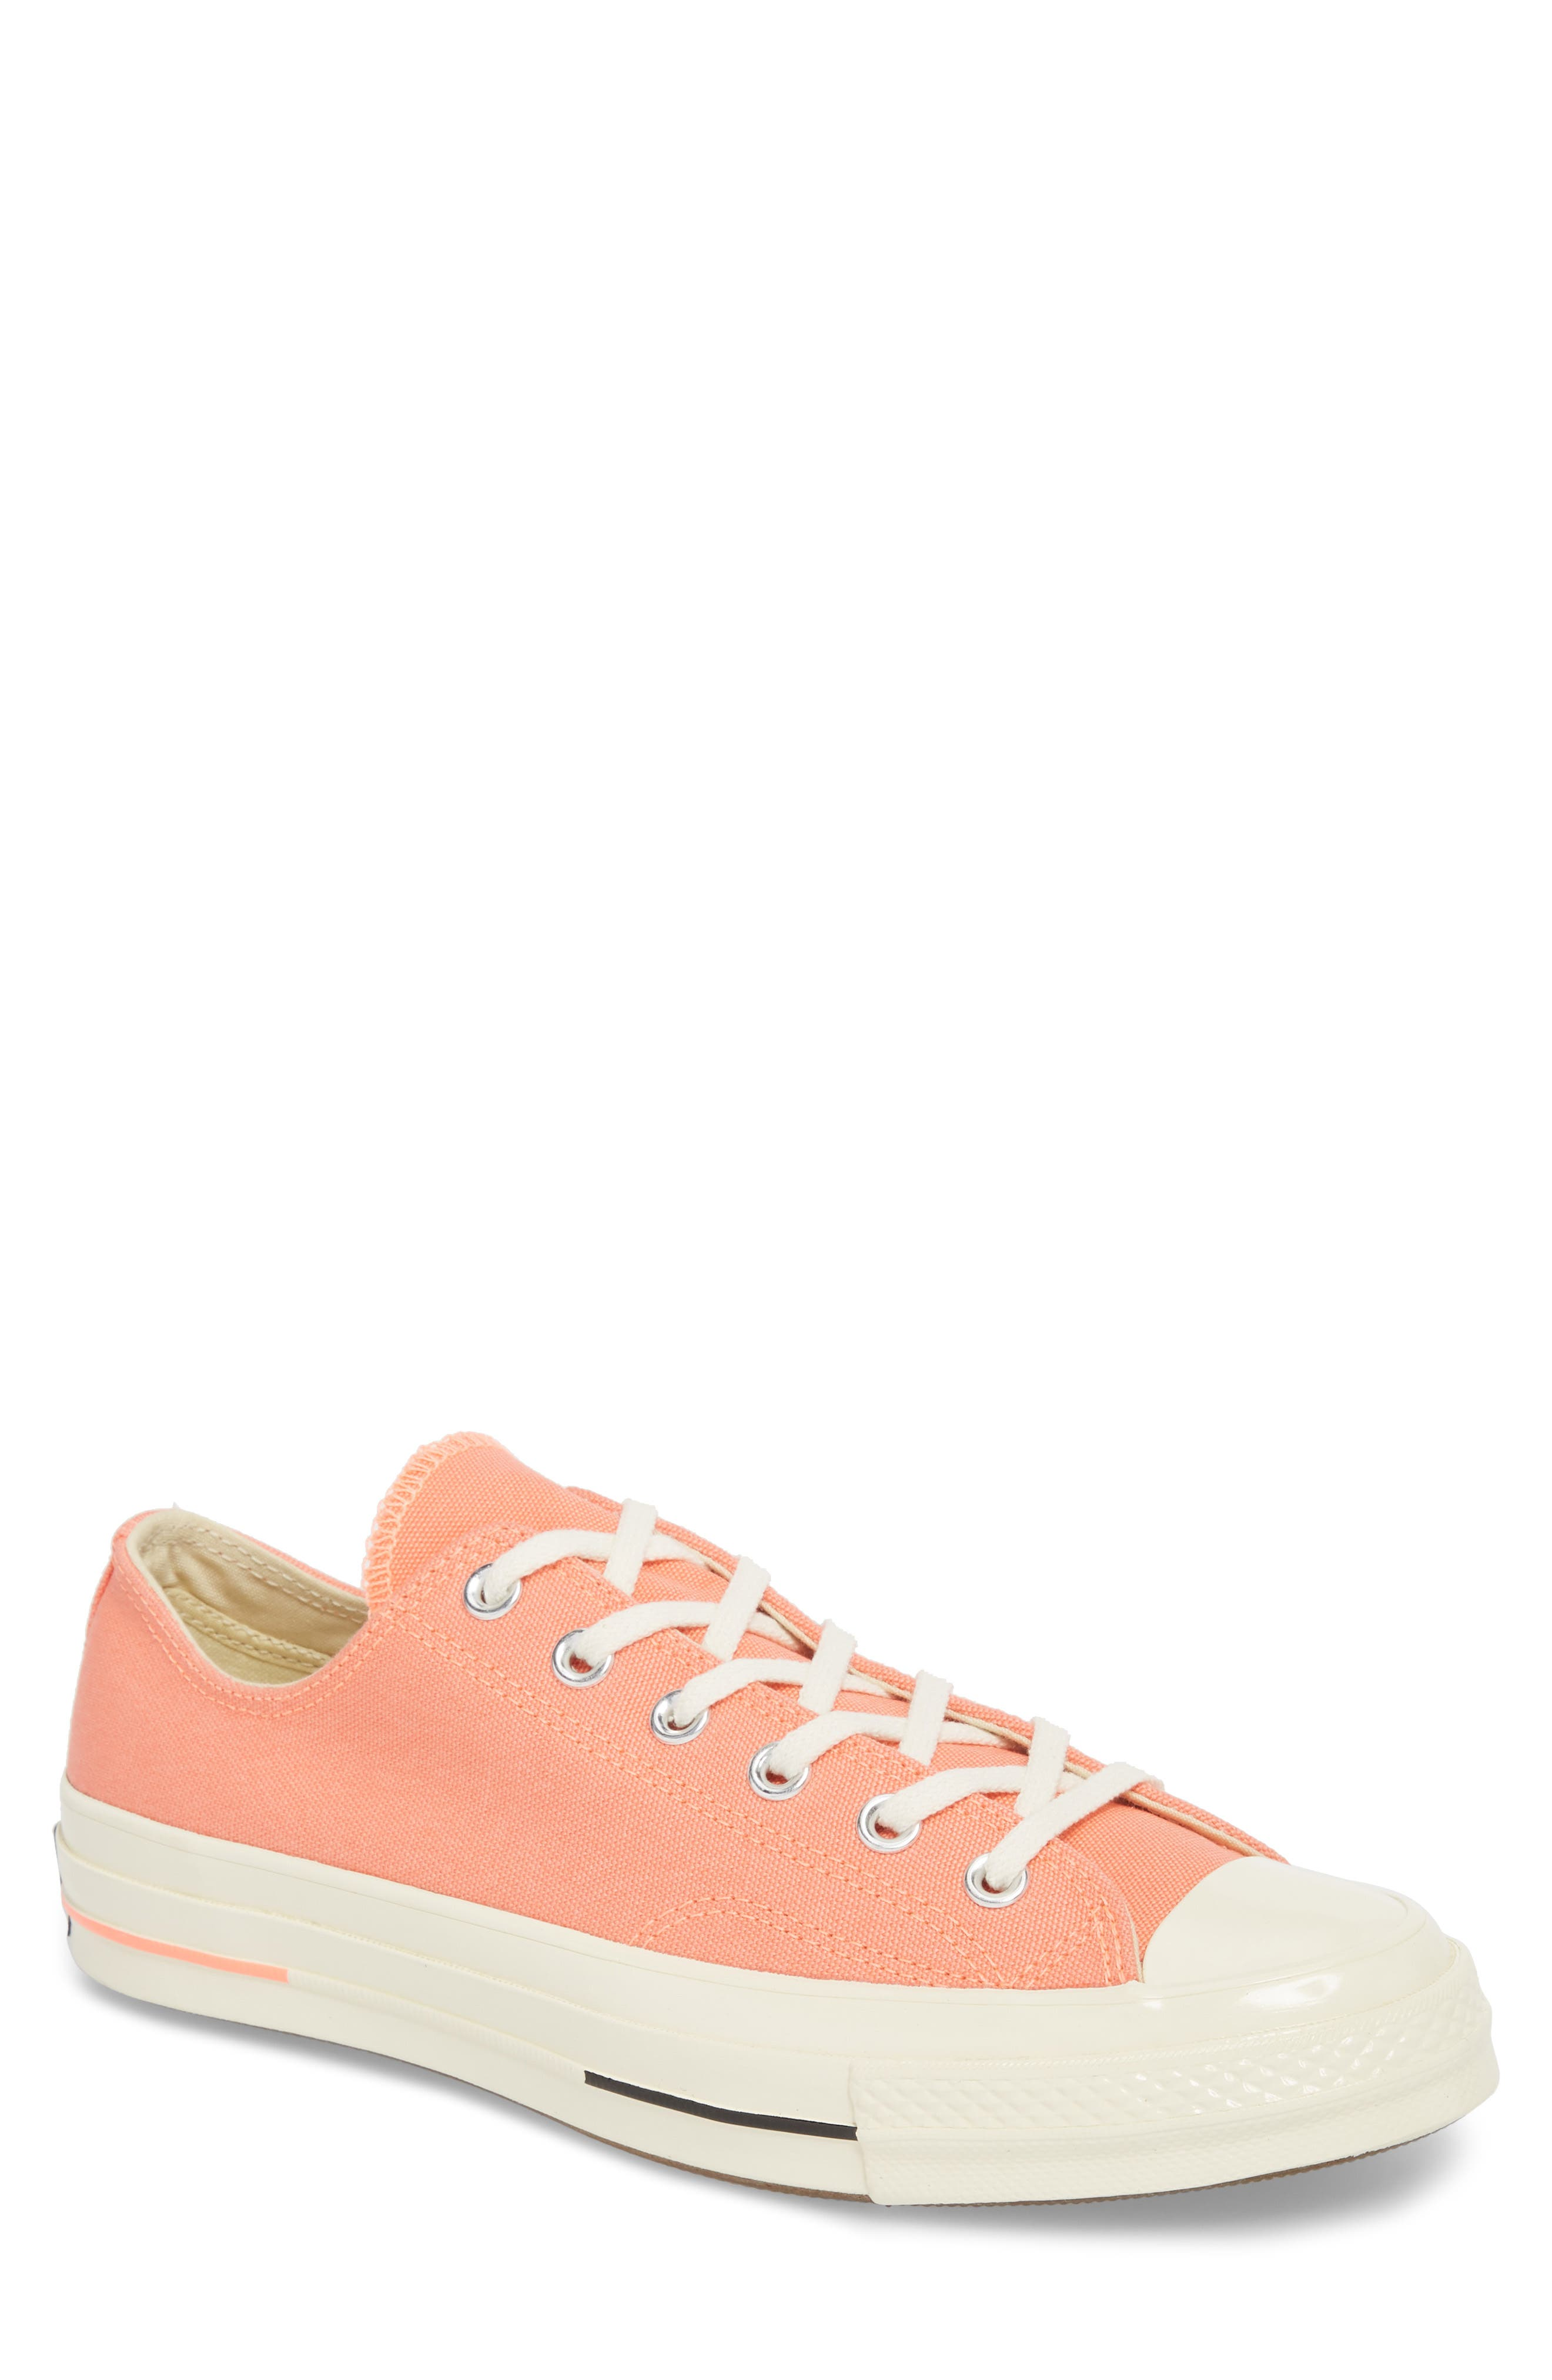 Chuck Taylor<sup>®</sup> All Star<sup>®</sup> 70 Bright Low Top Sneaker,                             Main thumbnail 1, color,                             CRIMSON PULSE